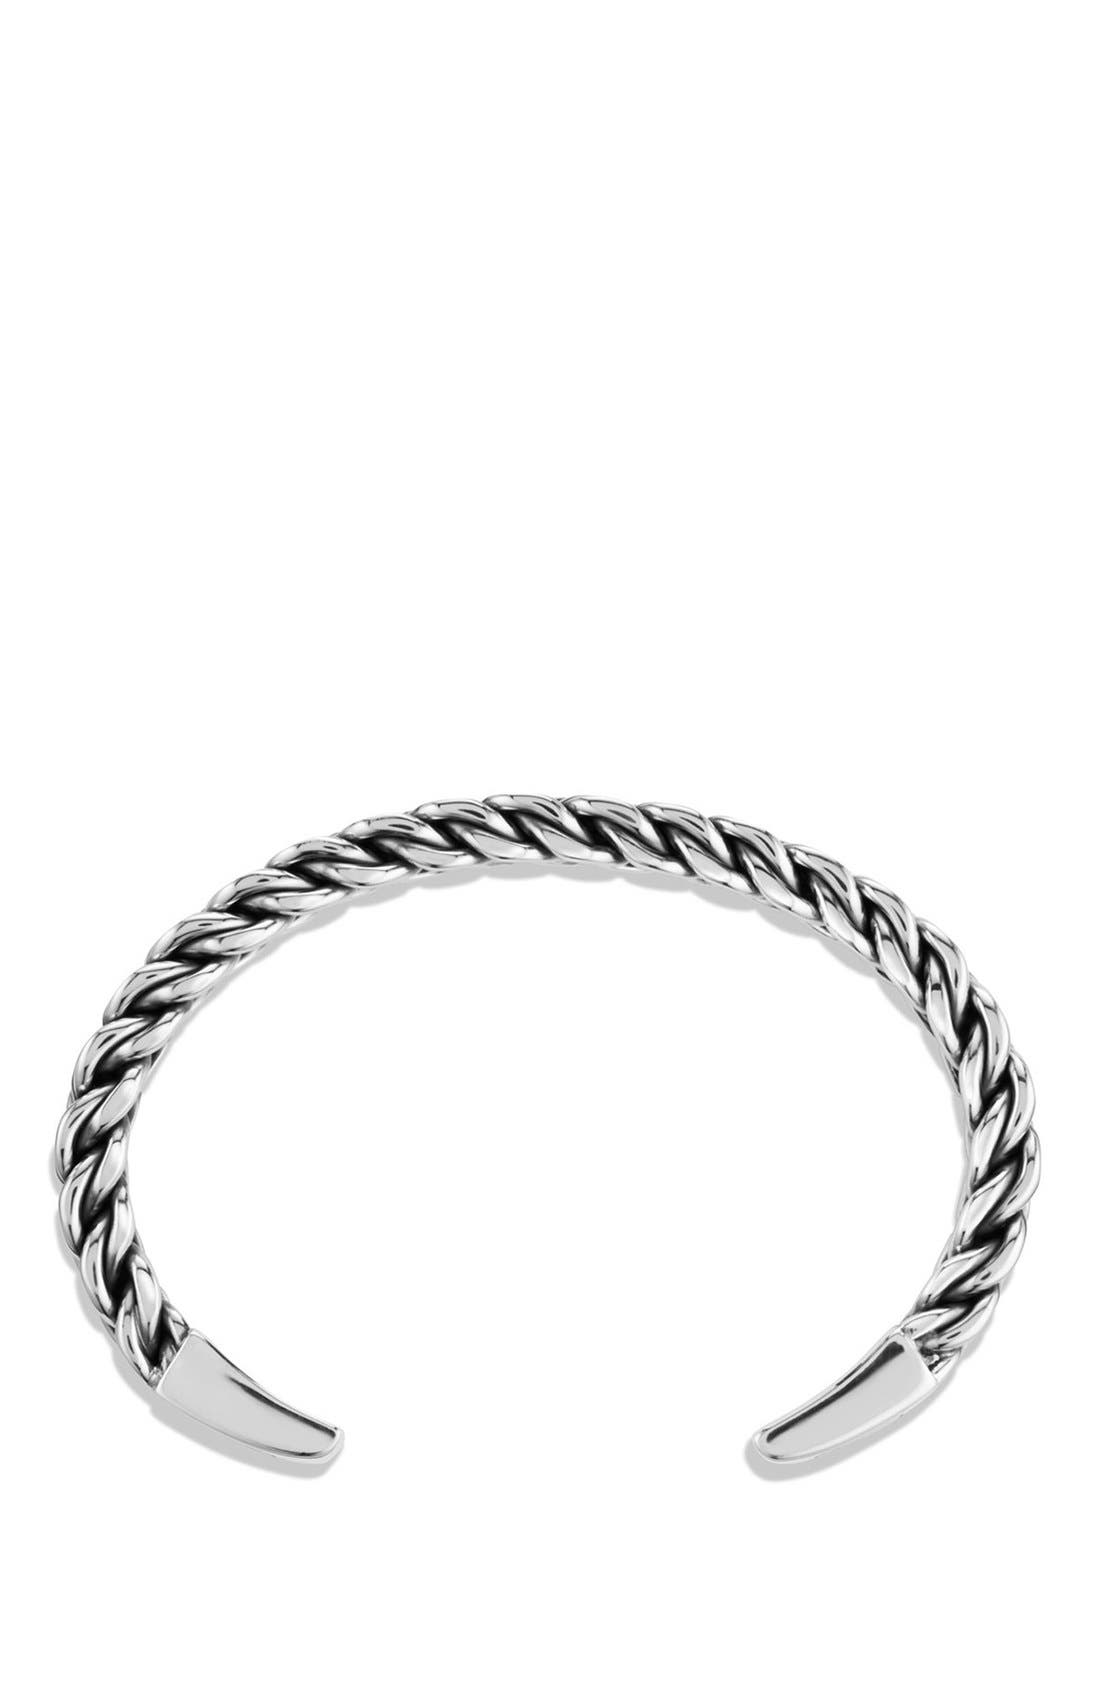 Alternate Image 2  - David Yurman 'Chain' Woven Cuff Bracelet